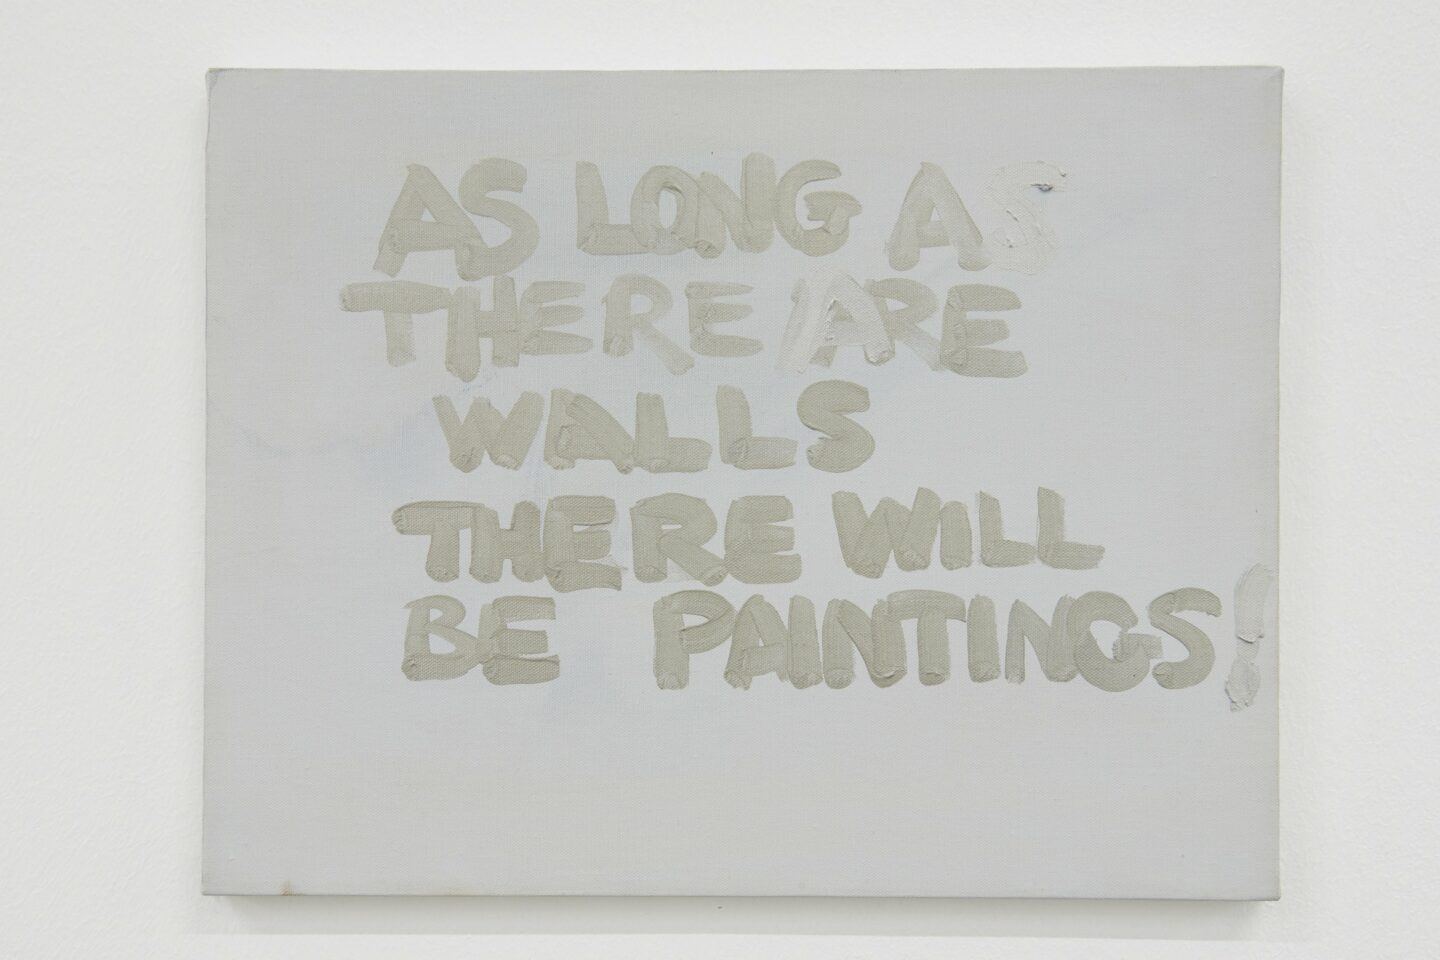 Exhibition View Gene Beery Retrospective «view on As Long As There Are Walls There Will Be Paintings, 1986» at Fri-Art Kunsthale, Fribourg / Photo: Guillaume Baeriswyl / Courtesy: the artist and LeWitt Collection, Chester, Conneticut, USA